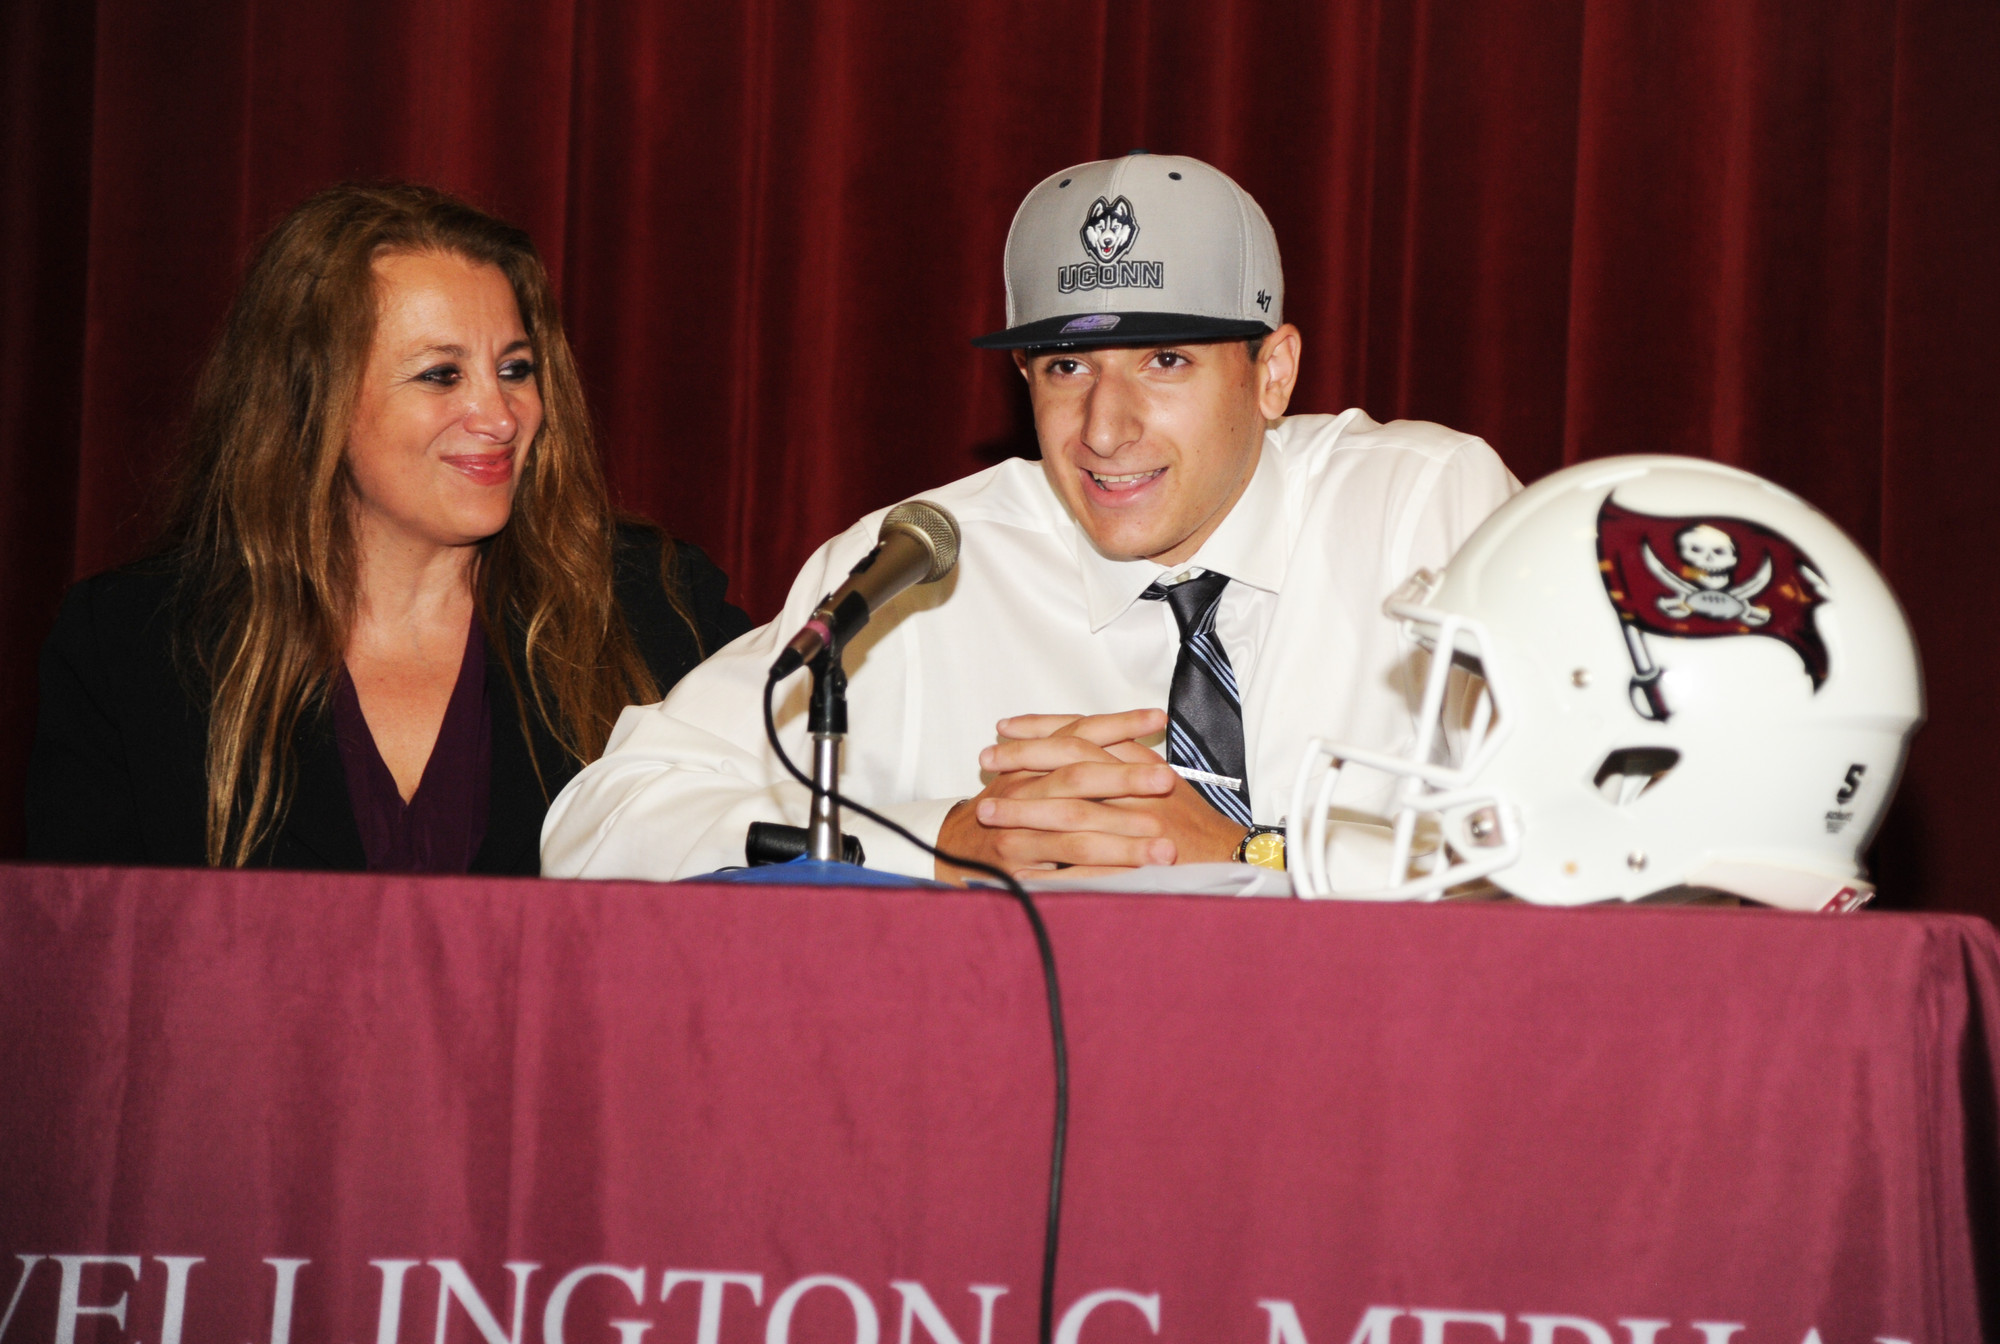 Mepham junior quarterback Tyler Davis, with his mother, Cindy, at his side, declared he's headed to the University of Connecticut on a football scholarship.